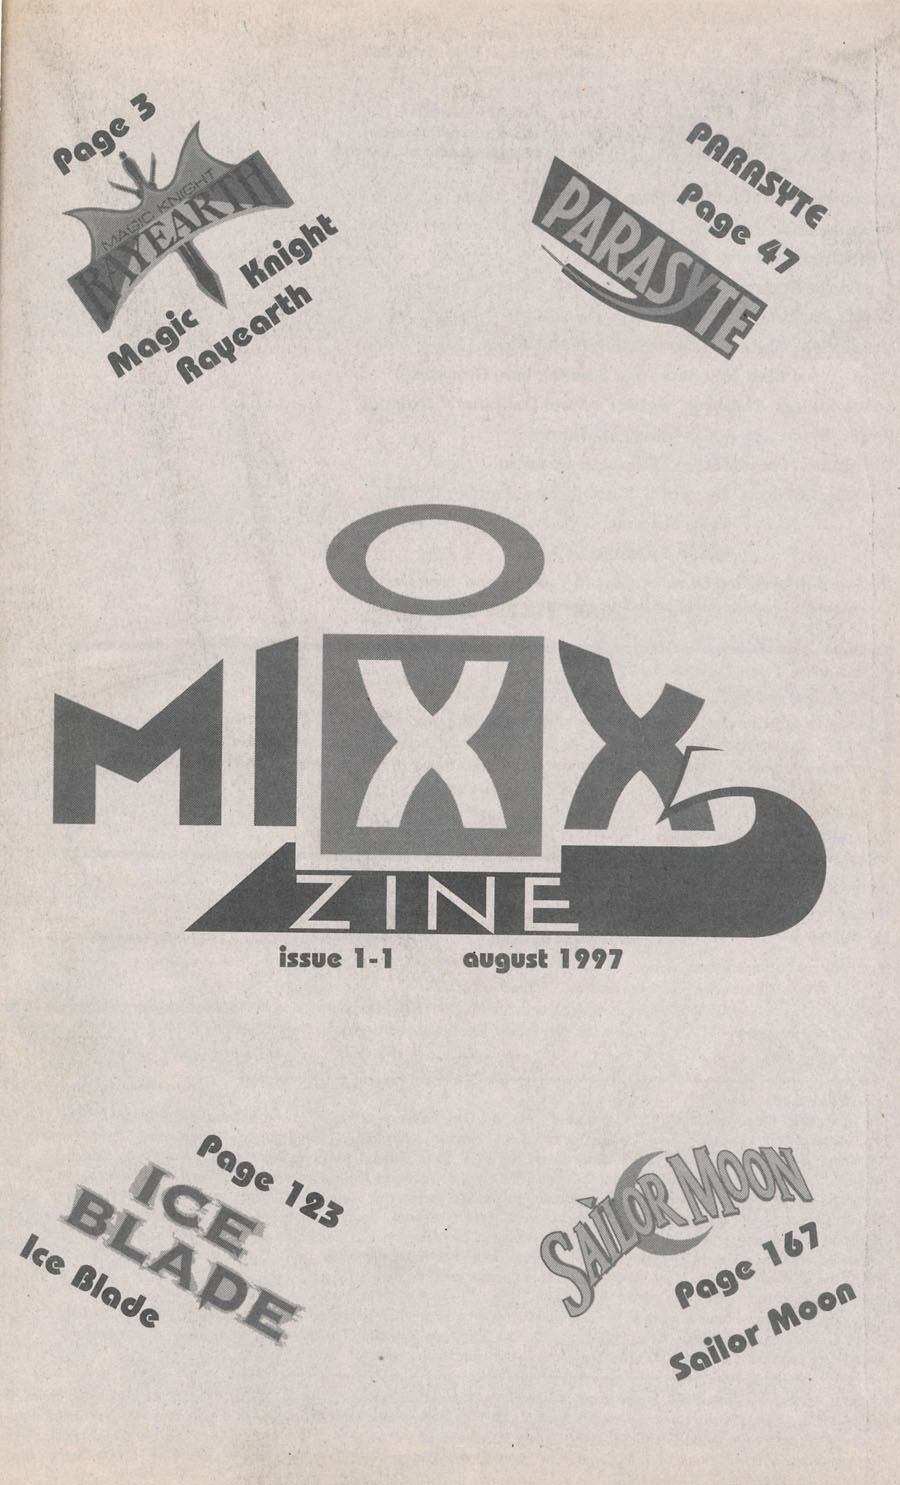 Mixx-Zine-Issue-1-August-1997-Contents-Sailor-Moon